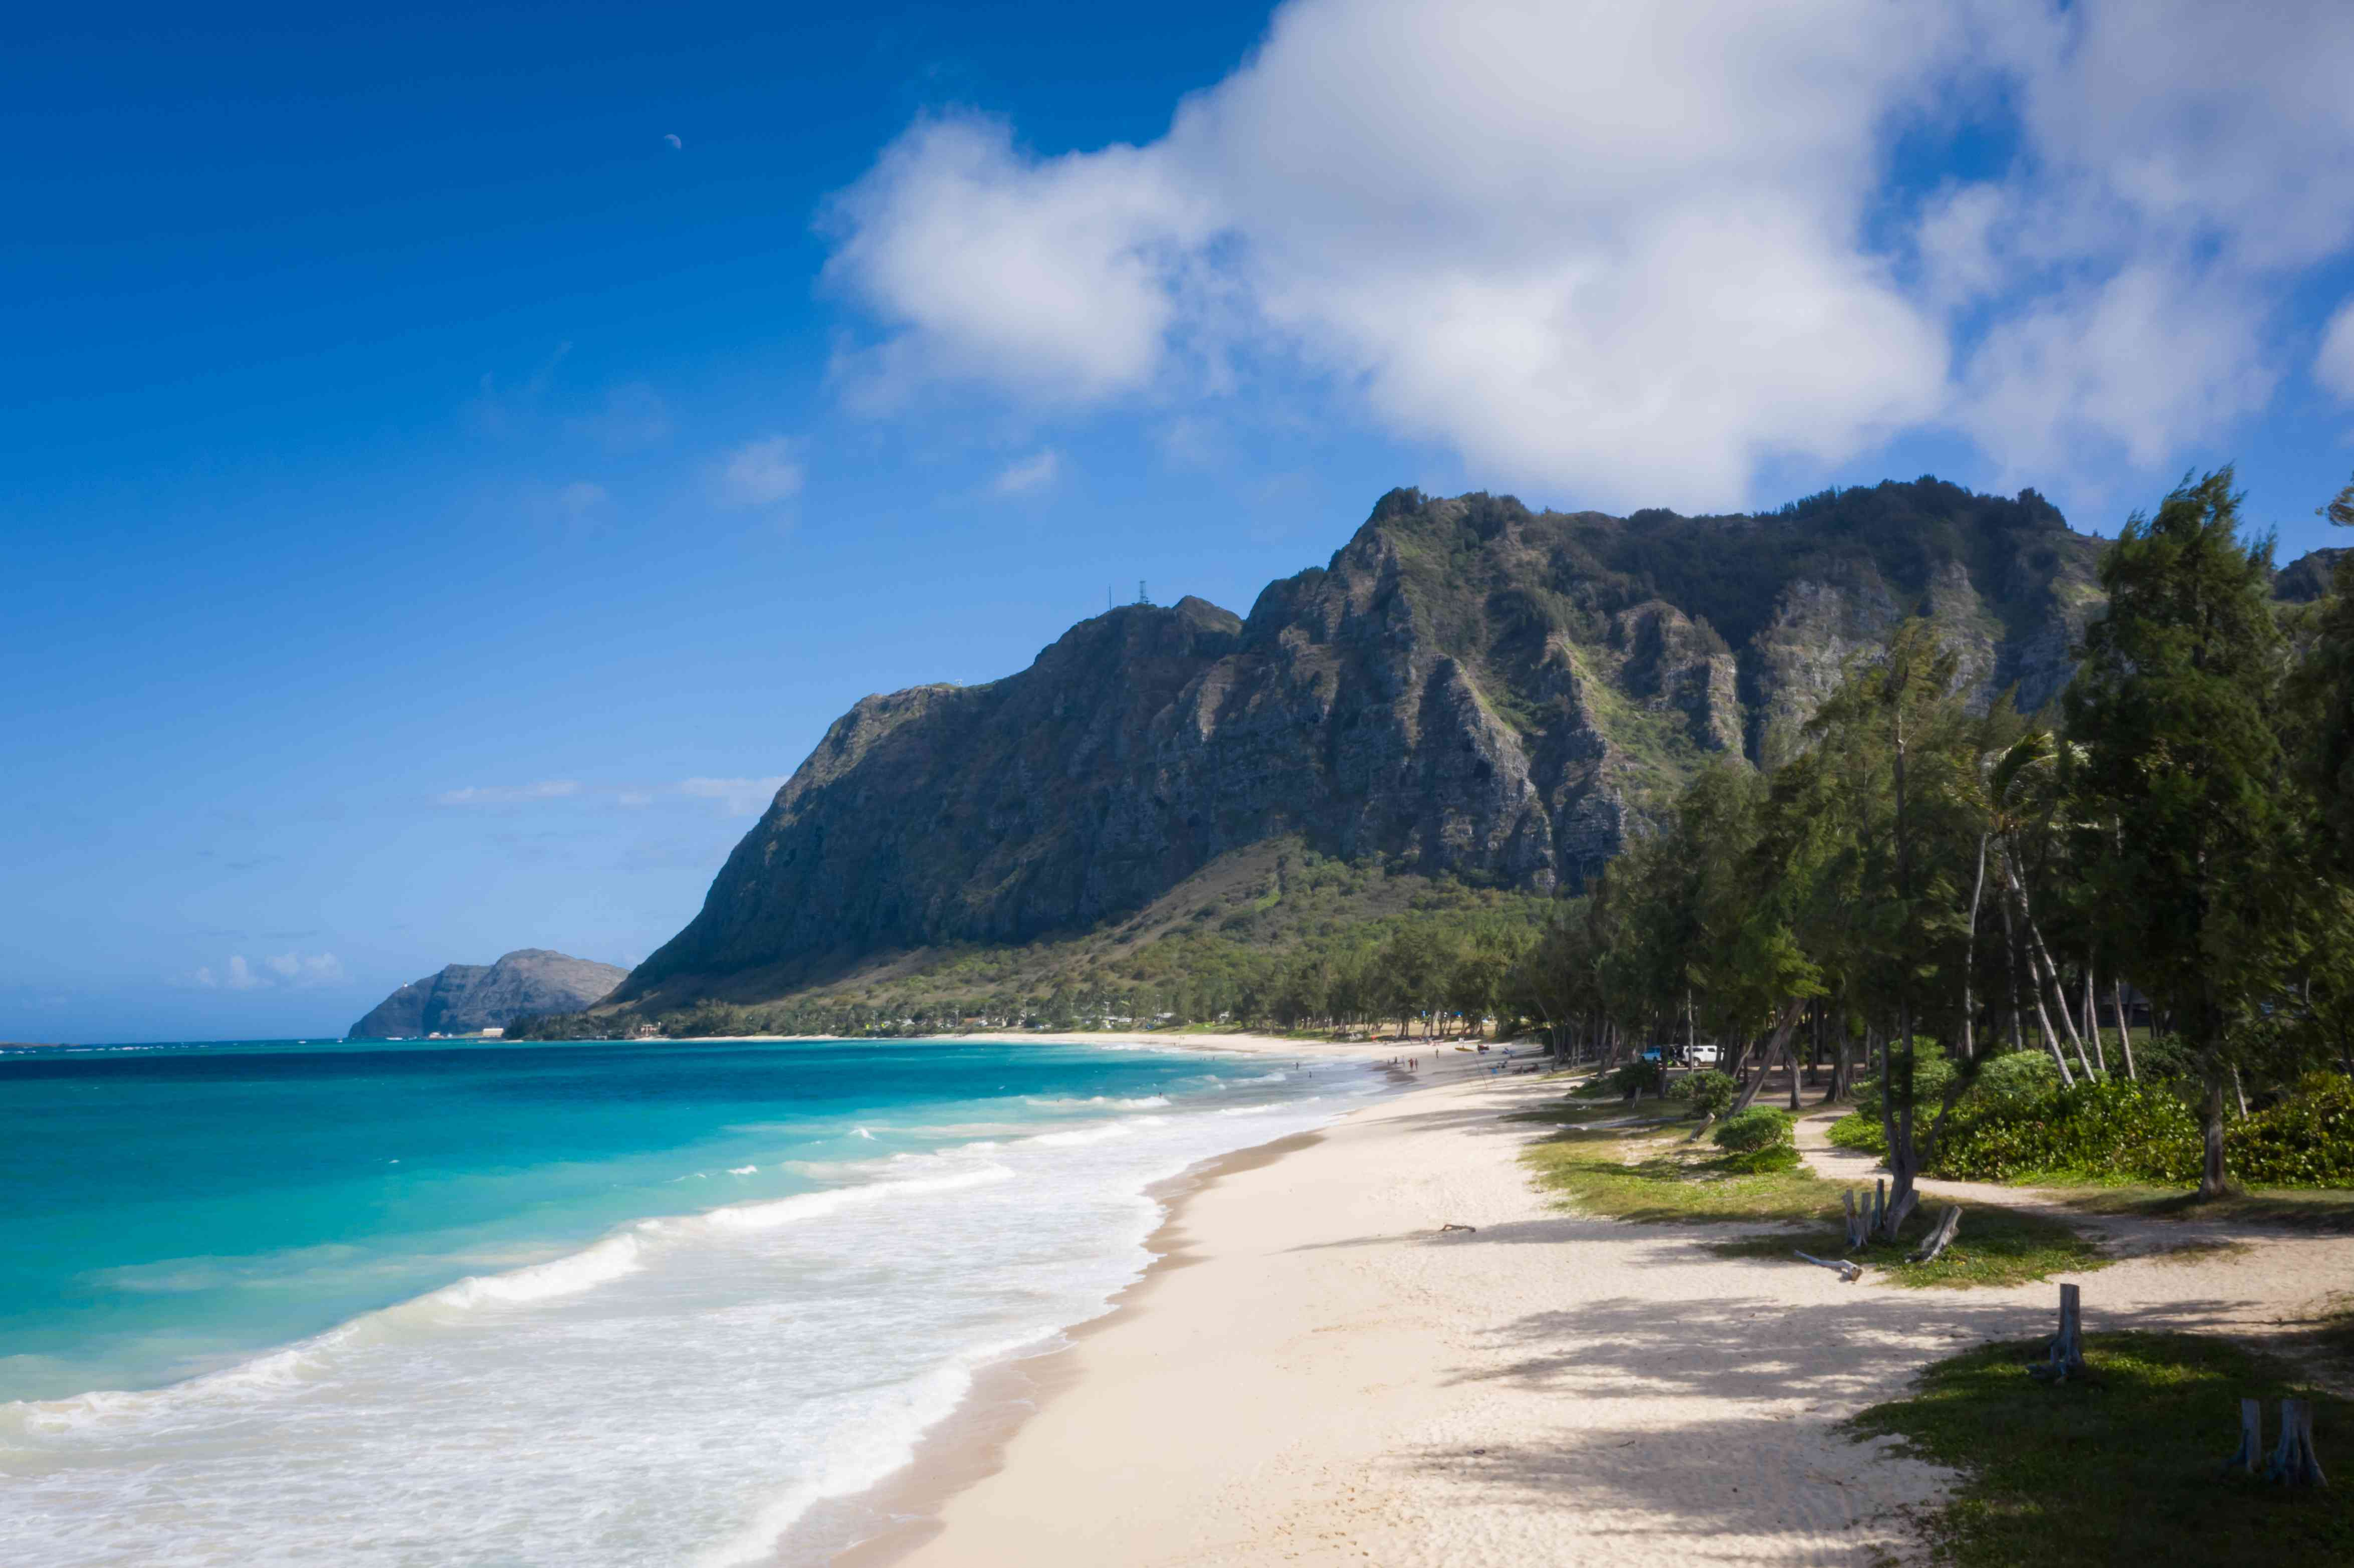 Sunny beach in Oahu Hawaii with a mountain in the background